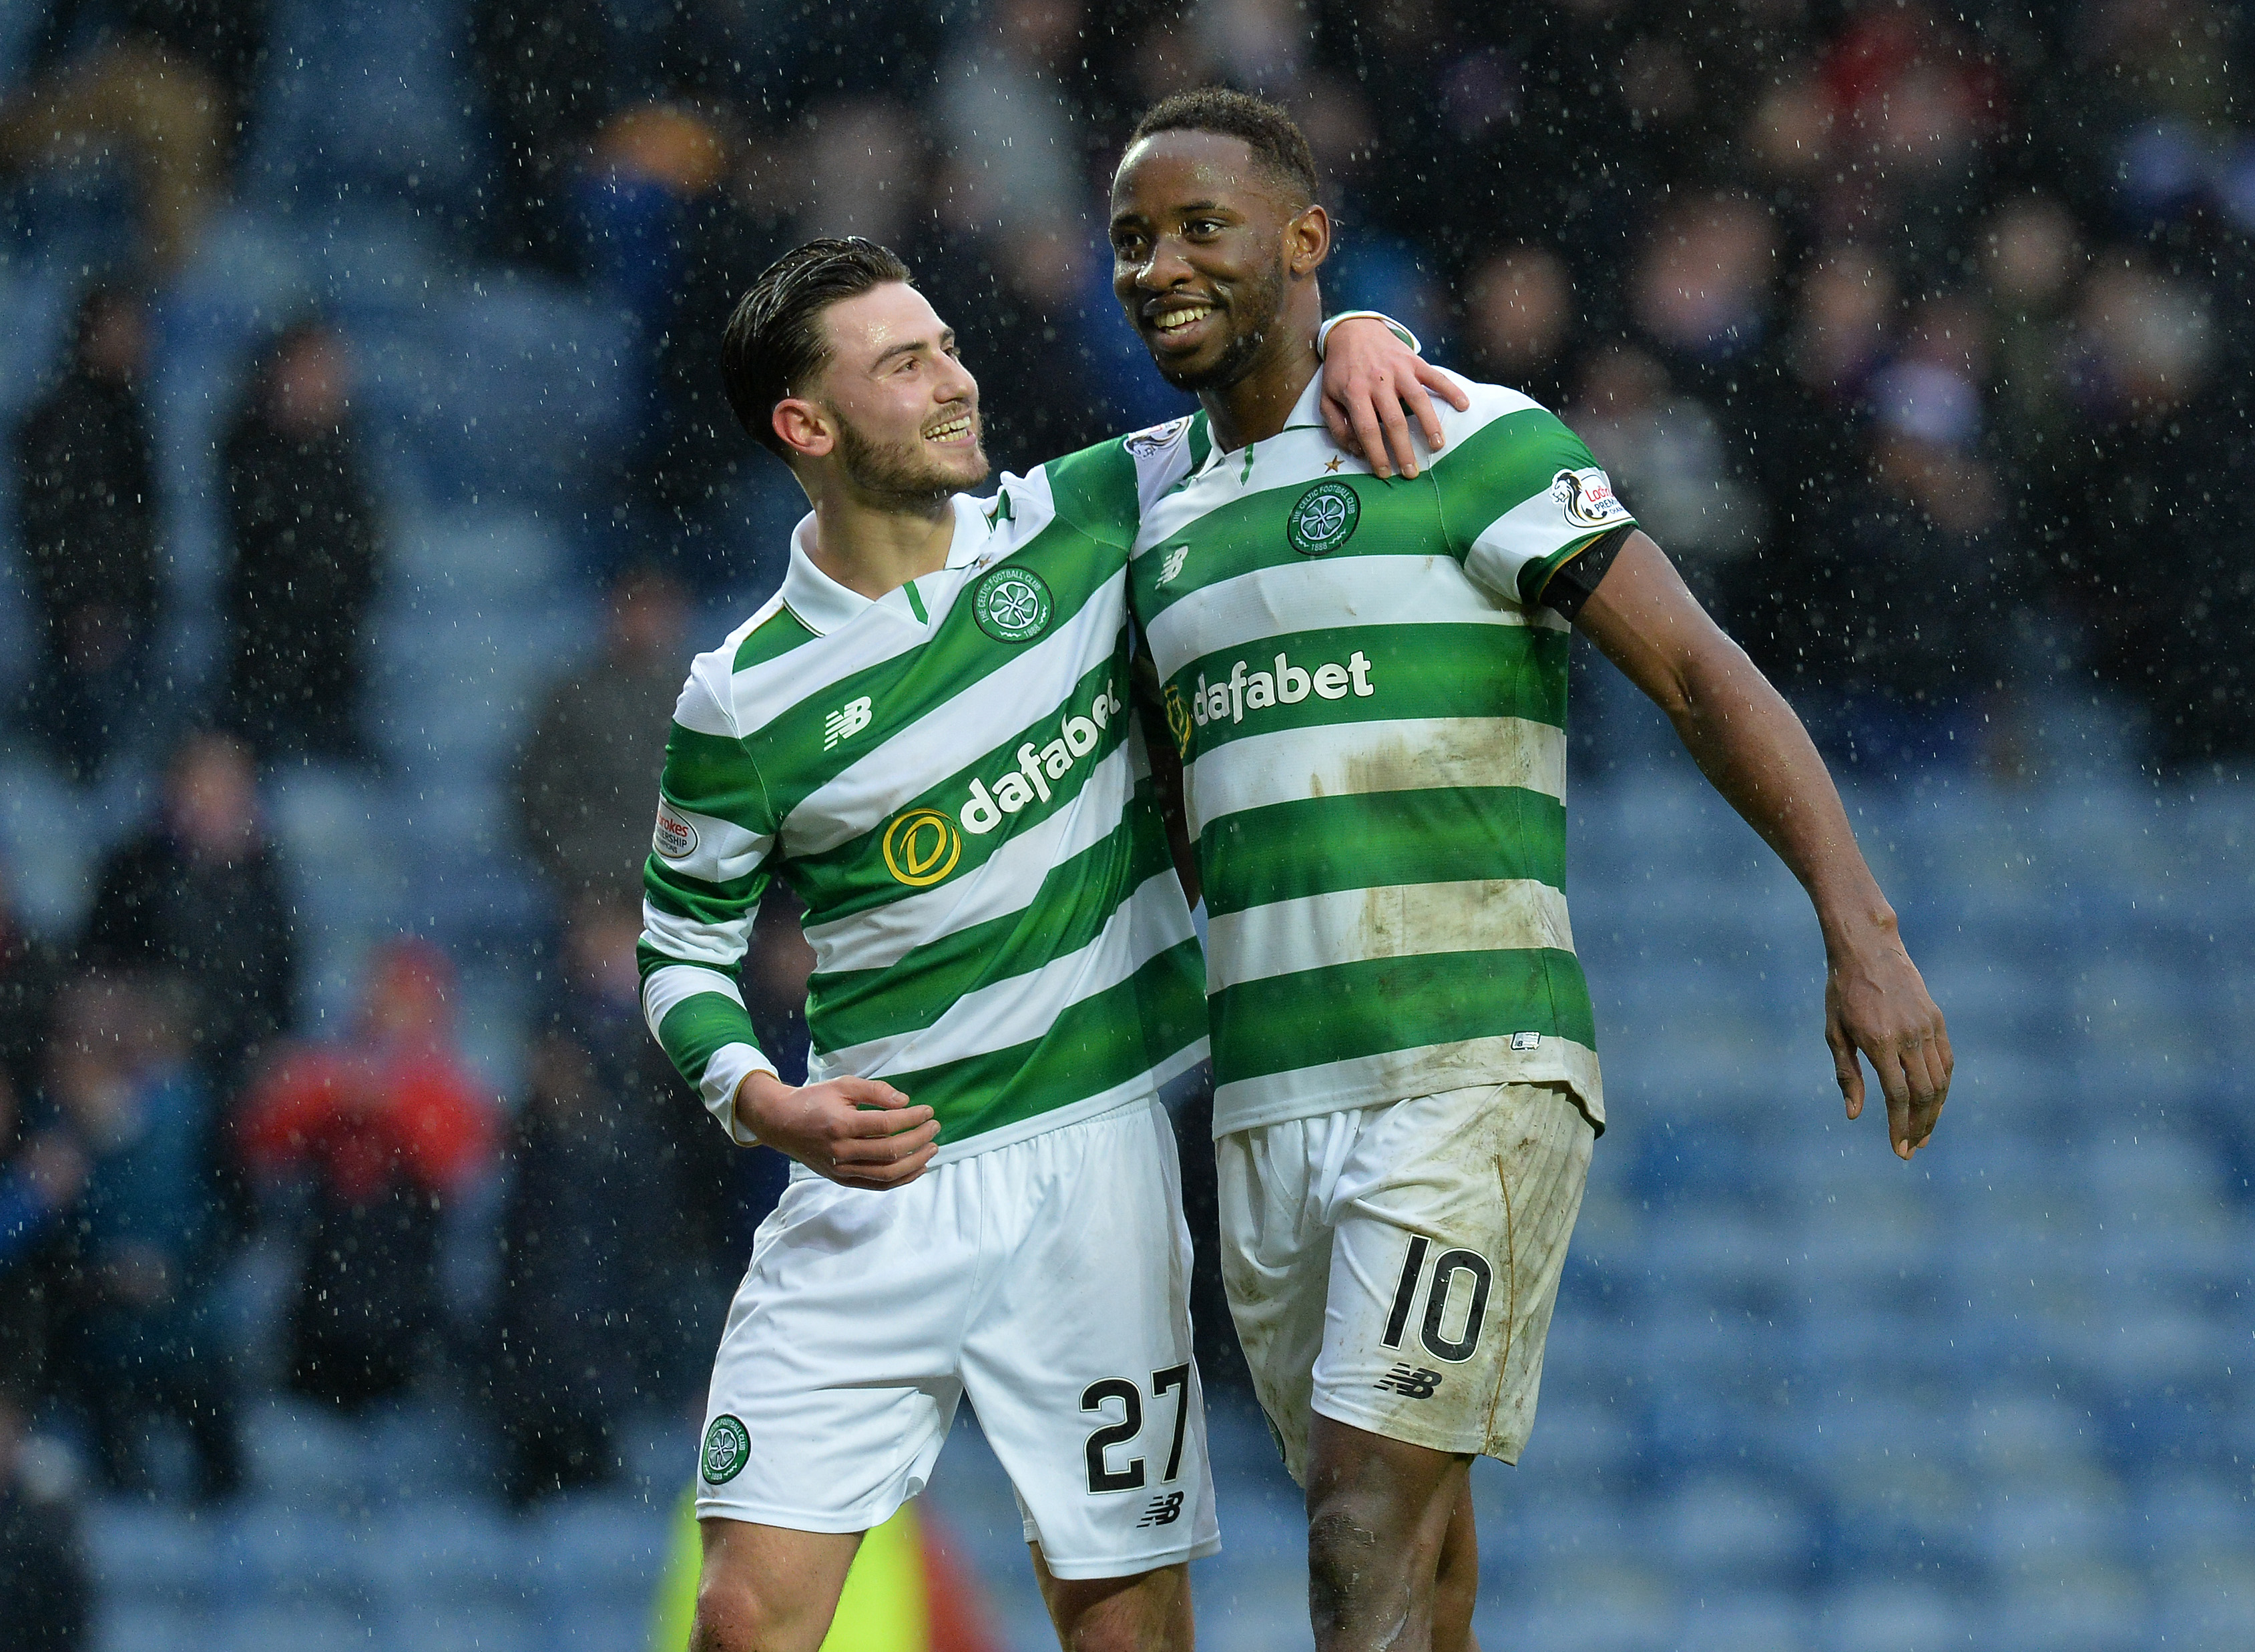 GLASGOW, SCOTLAND - DECEMBER 31: Moussa Dembele of Celtic celebrate at the final Whistle with team mate Patrick Roberts during the Scottish Premiership match between Rangers FC and Celtic FC at Ibrox Stadium on December 31, 2016 in Glasgow, Scotland. (Photo by Mark Runnacles/Getty Images)